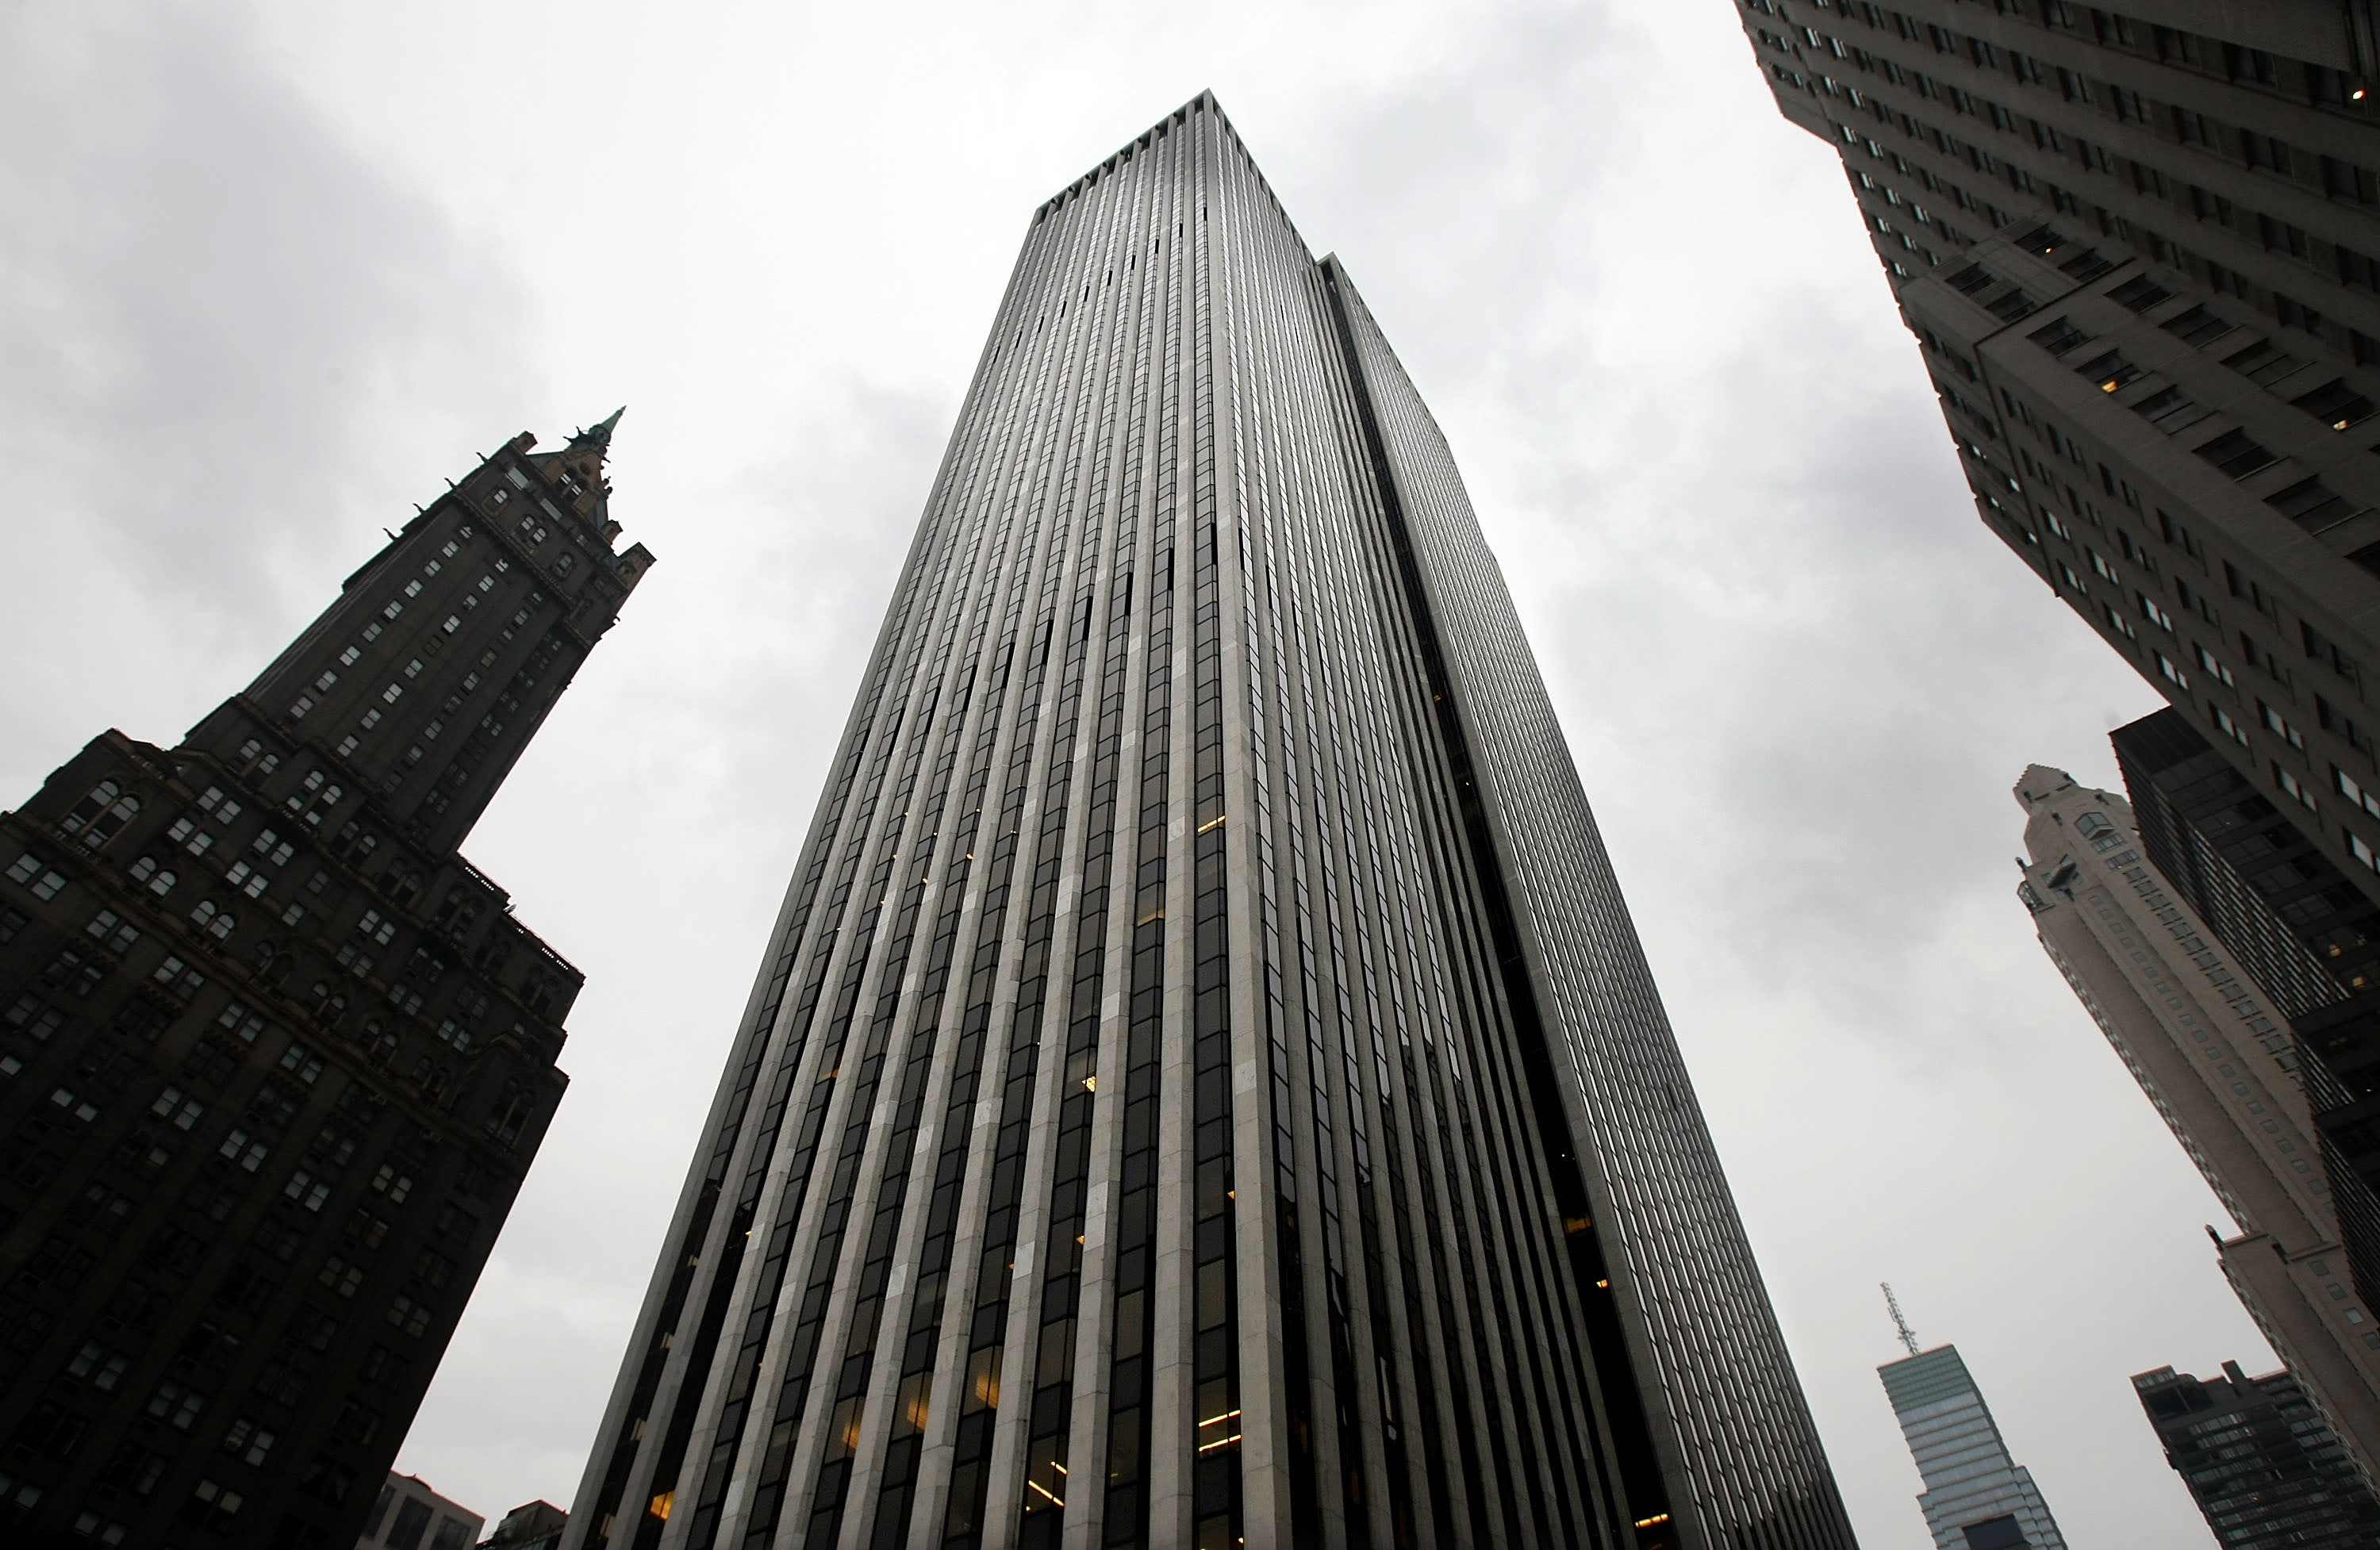 The General Motors Building in New York City